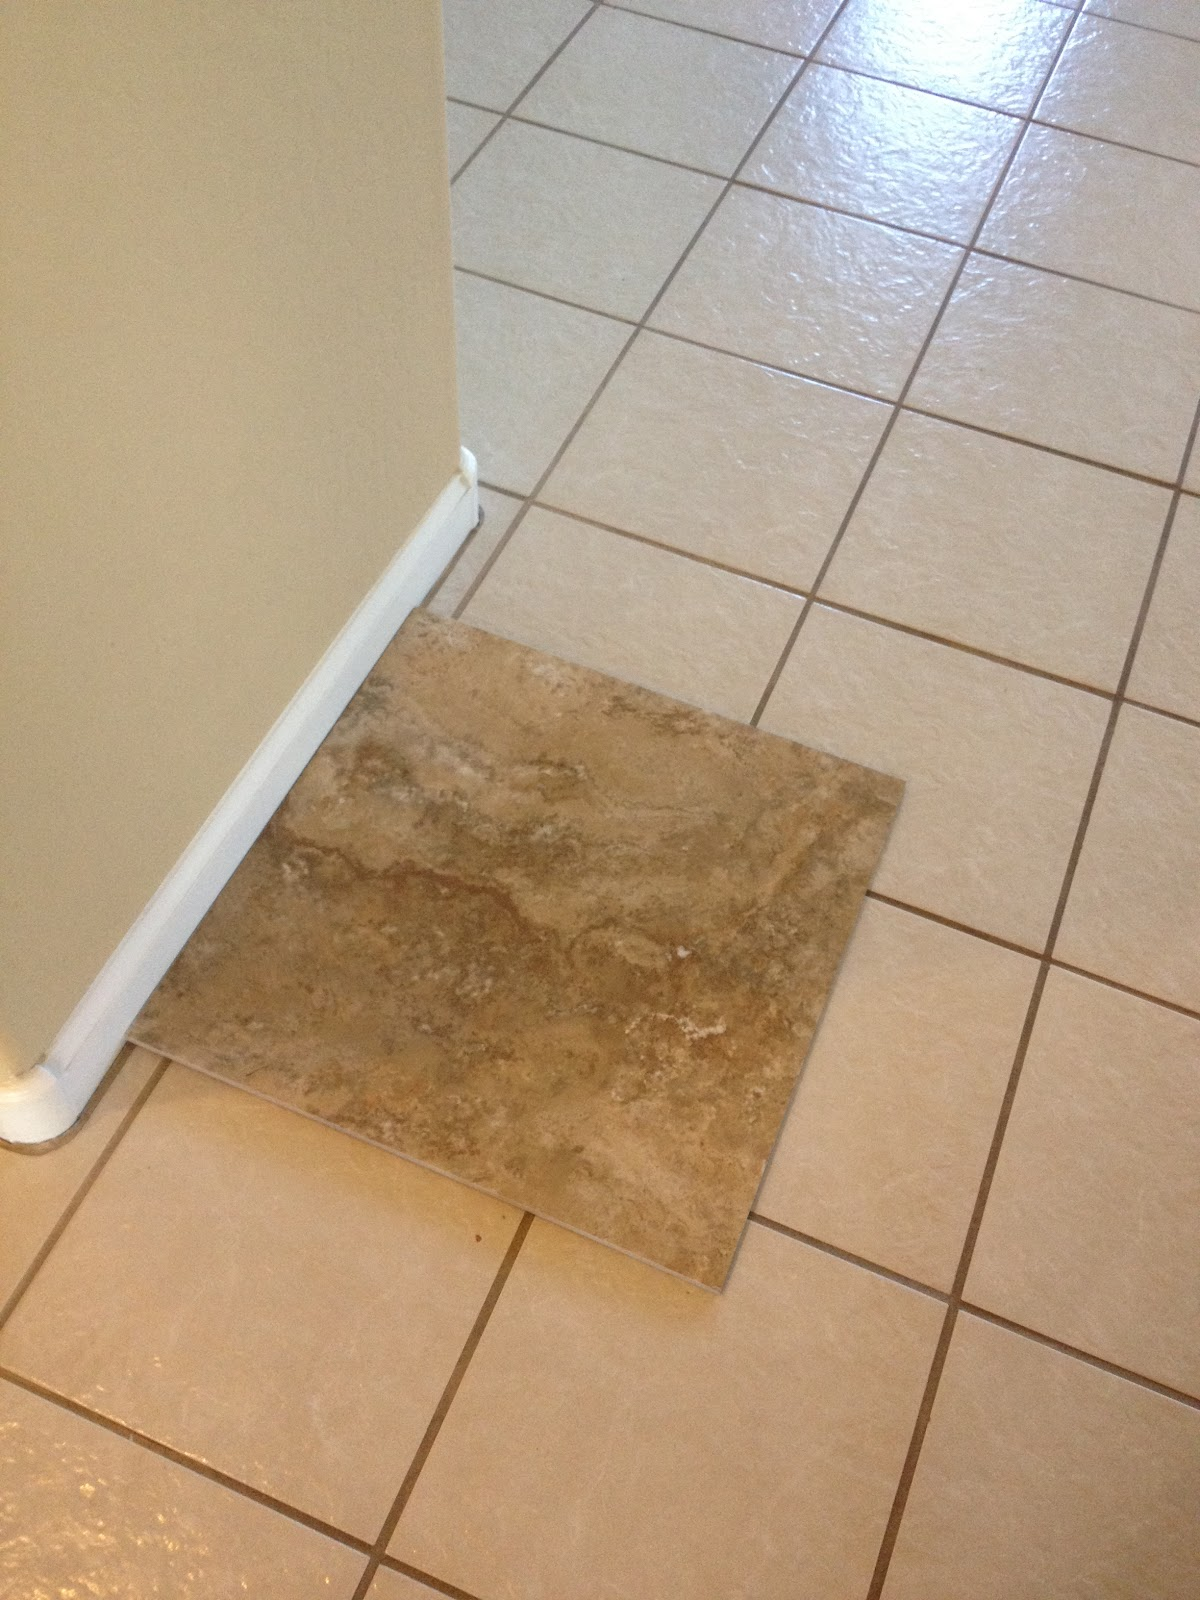 Friendship, Life and Style: Travertine vs. Ceramic Tile